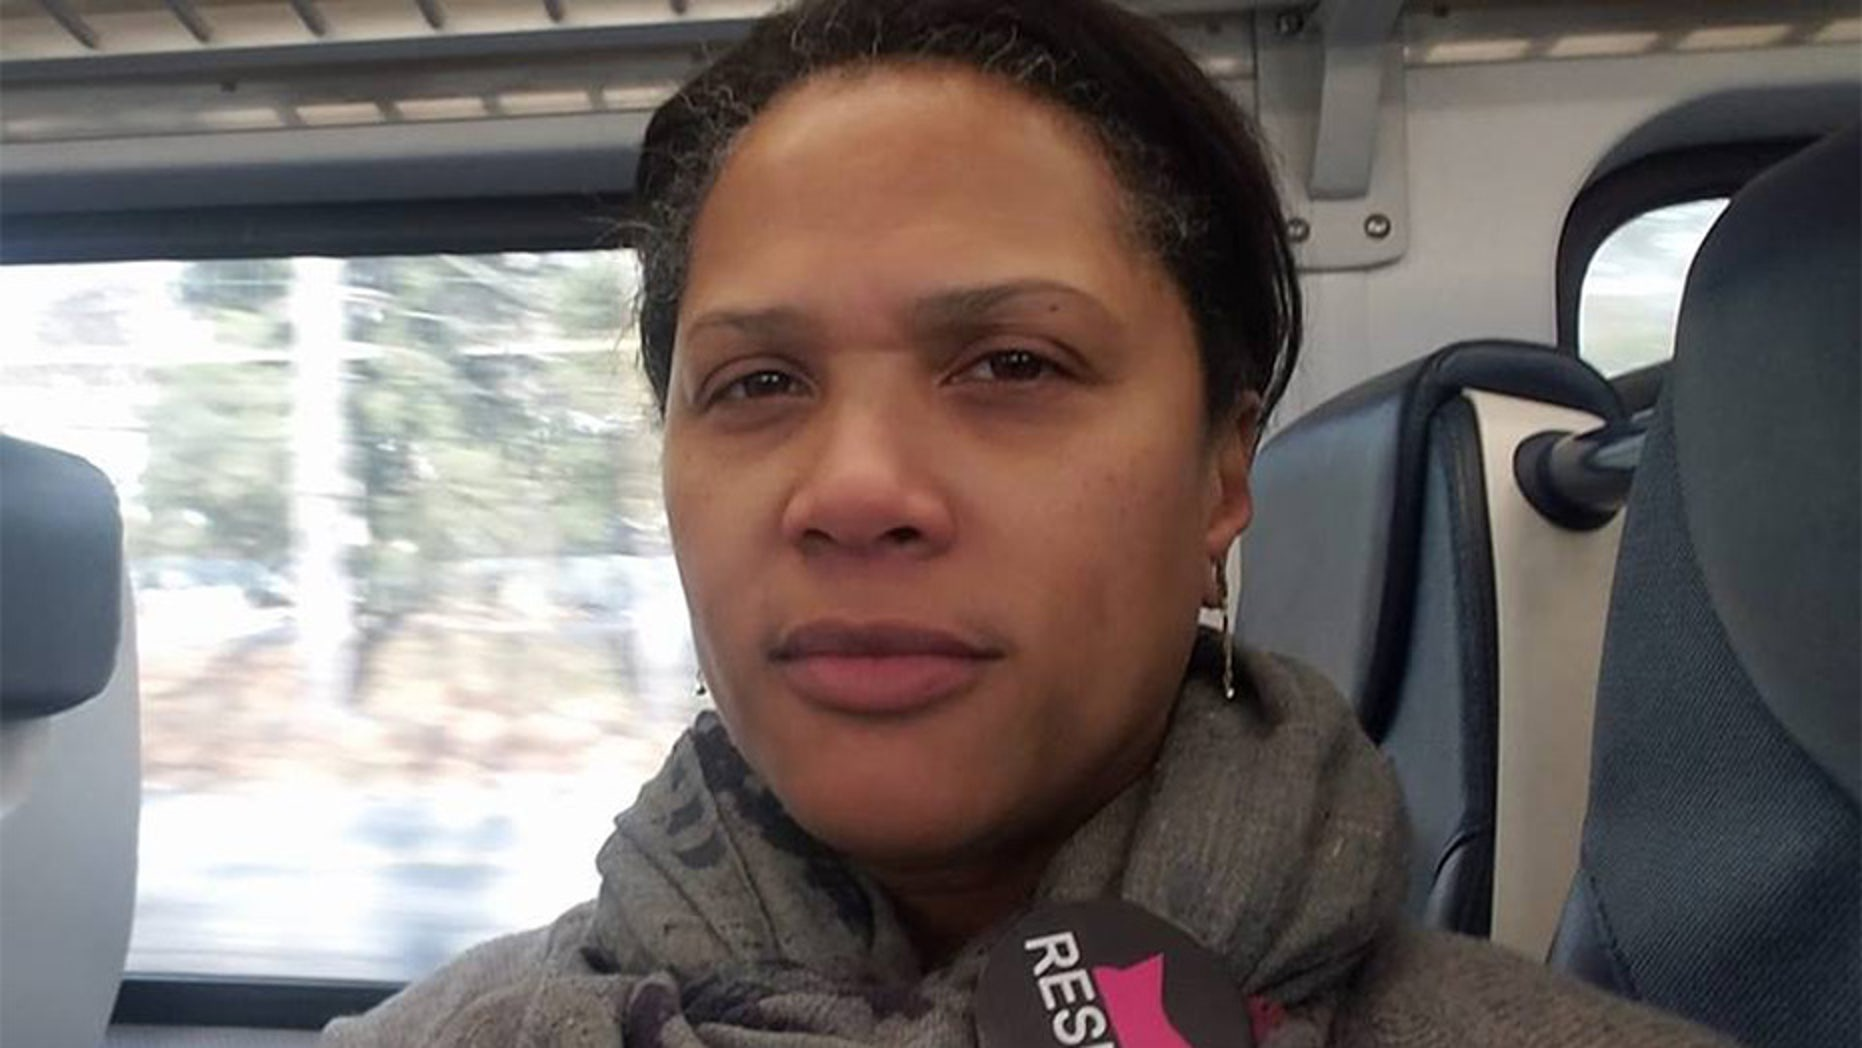 Stephanie Lawson-Muhammad is accused of exercising her 'civic privilege' during a traffic stop on April 27 in South Orange, N.J.